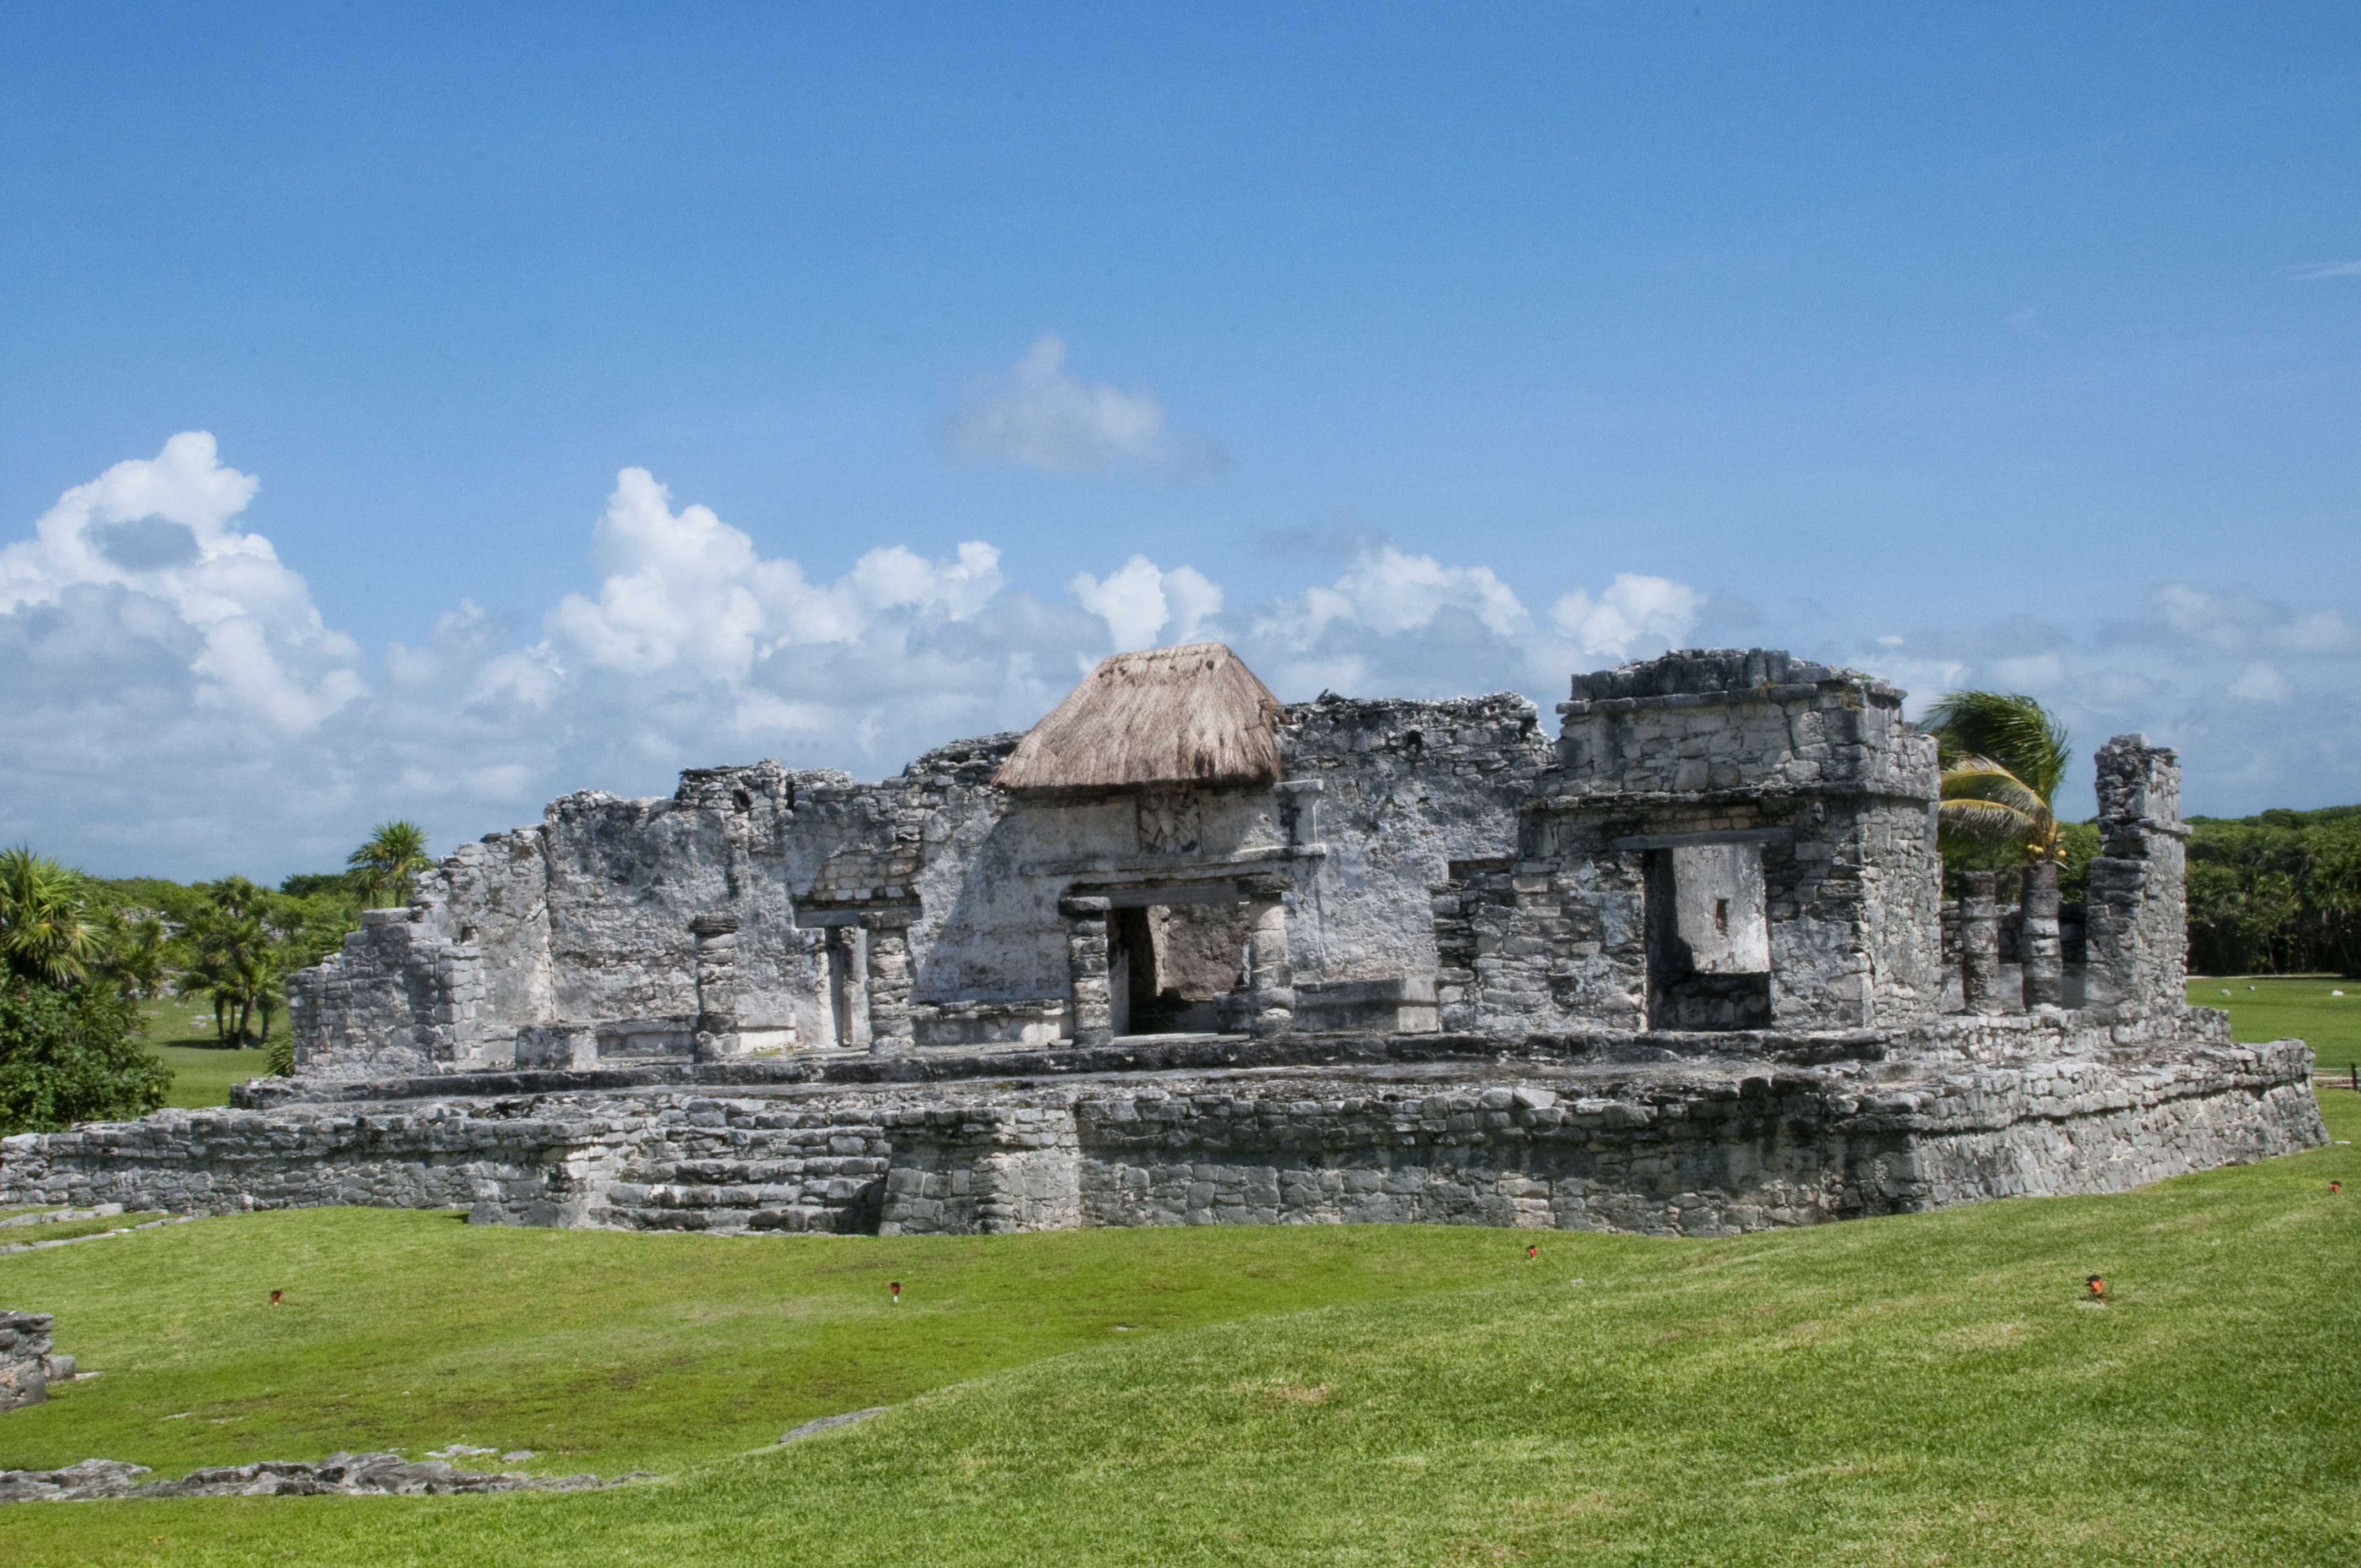 Great Palace of the ancient Mayan city of Tulum, Yucatan, Mexico